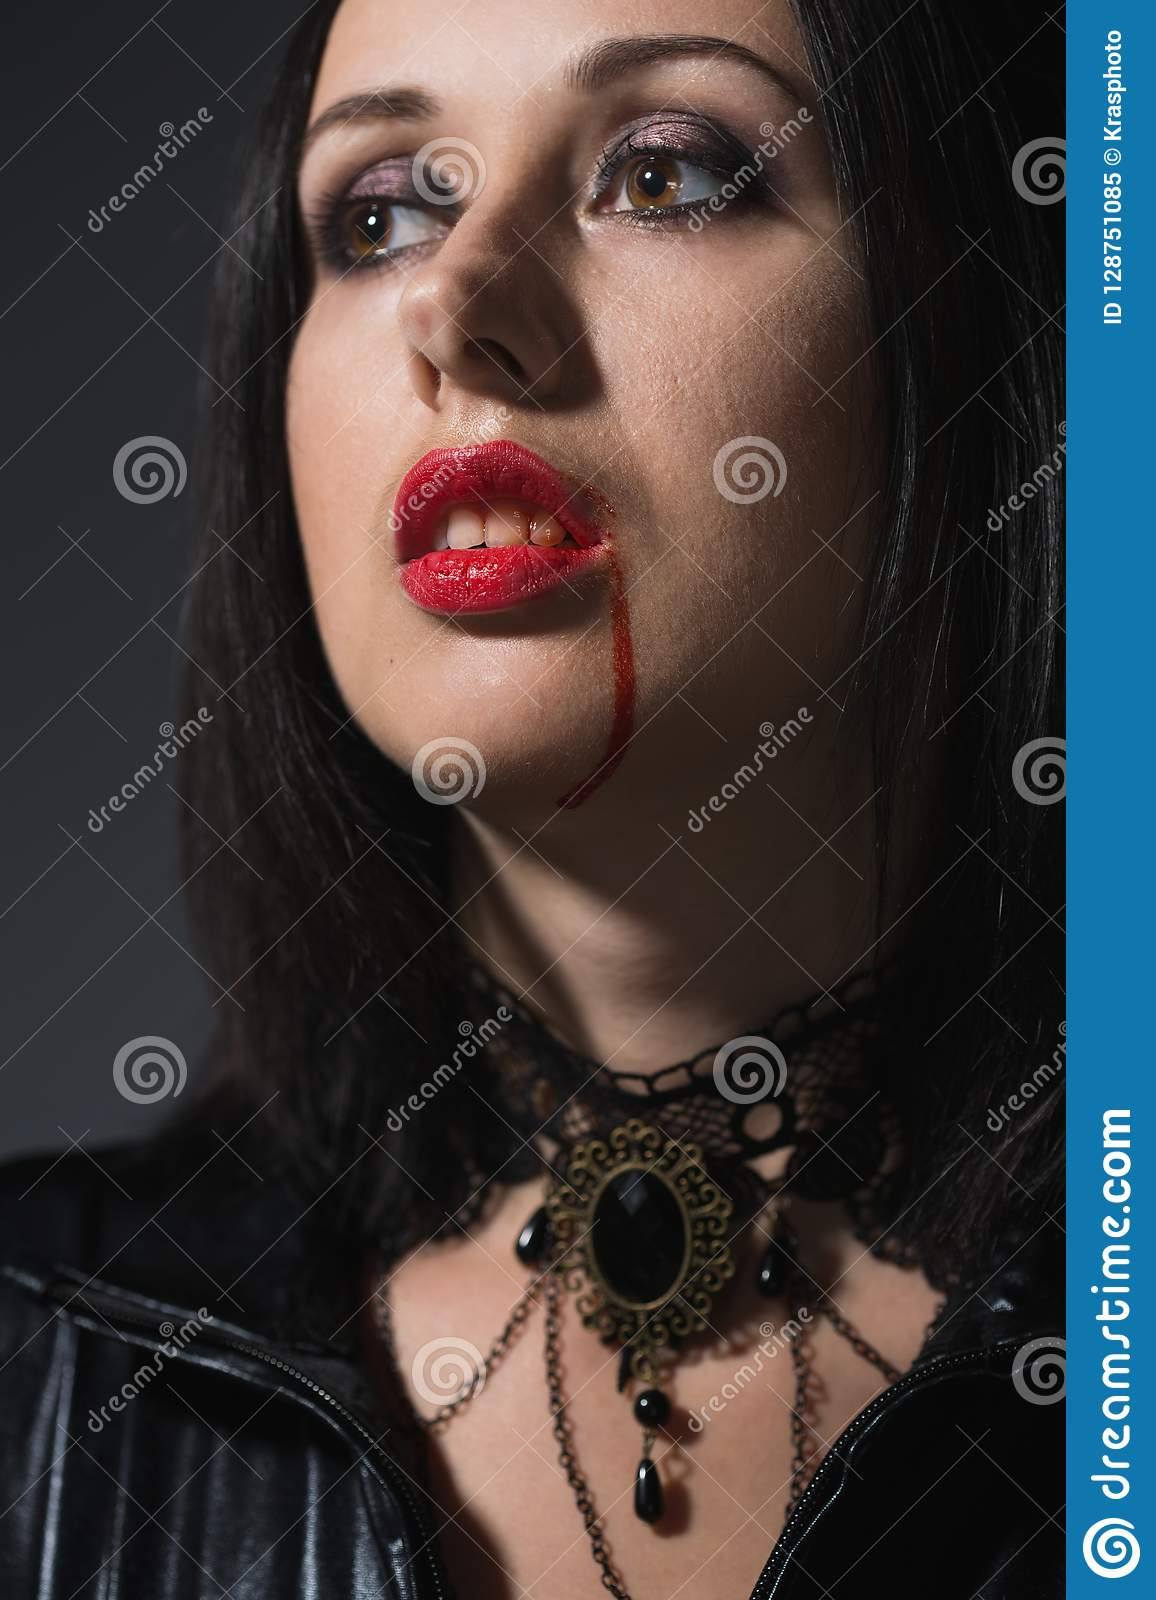 Vampire woman with a bloody mouth and teeth fangs celebrating a